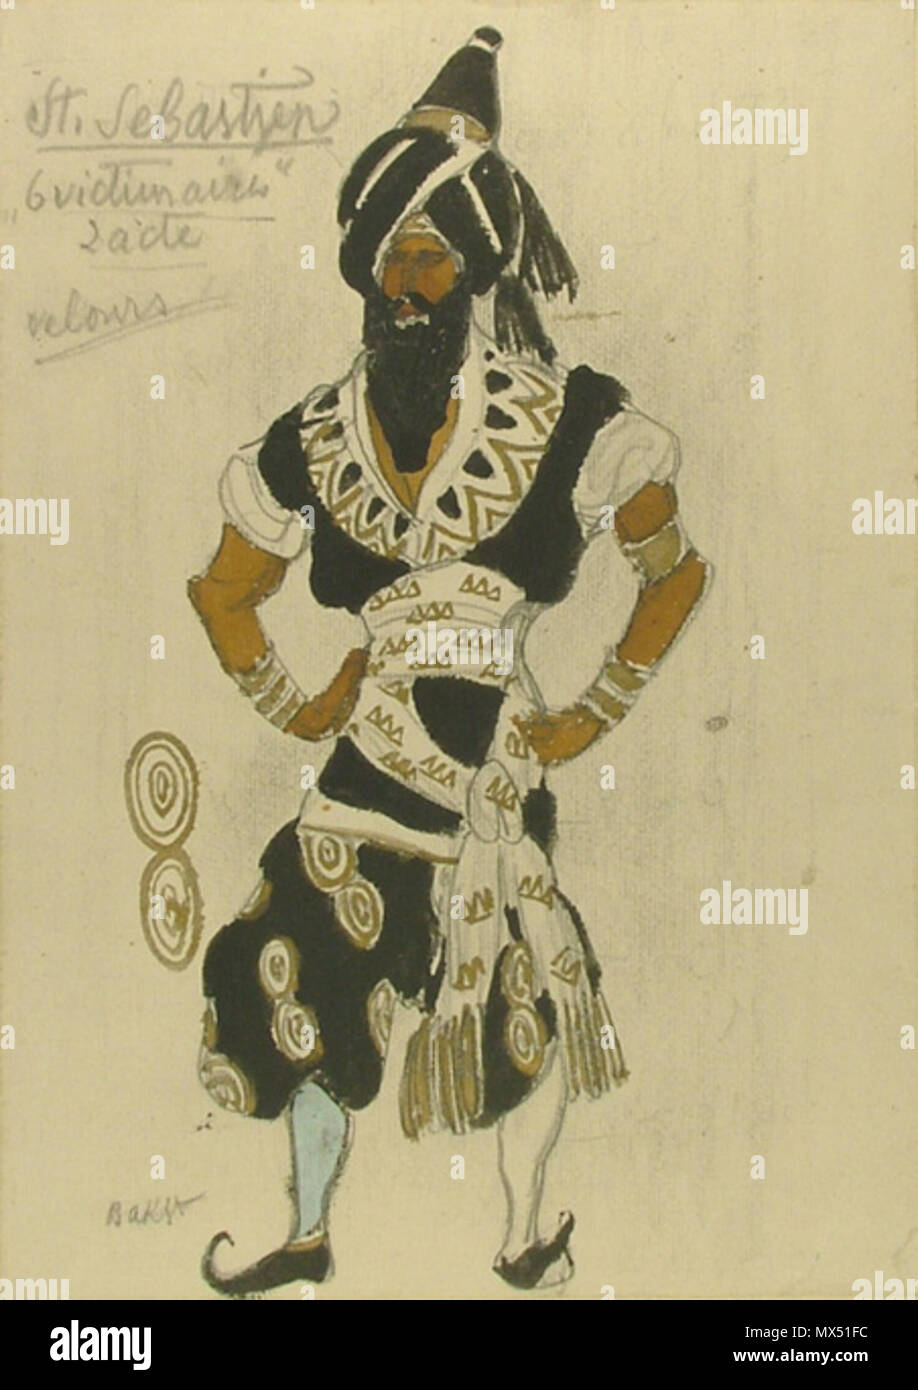 . Design for a Costume in 'St Sebastien' Salmina-Haskell (1989) 7. Graphite, watercolour and gold paint over graphite on off-white laid paper. Sheet: 314 x 223 mm. Signed in graphite lower left: Bakst; Inscribed in graphite upper left: St. Sebastien / '6 victimaires' / 2 acte / velours The Ashmolean Museum, Oxford. Bequeathed by Mikhail Vasil'evich Braikevitch, 1949; WA1949.379.2. 20th century. Bakst 401 Marthyre de S. Sebastien by L. Bakst 14 - Stock Image